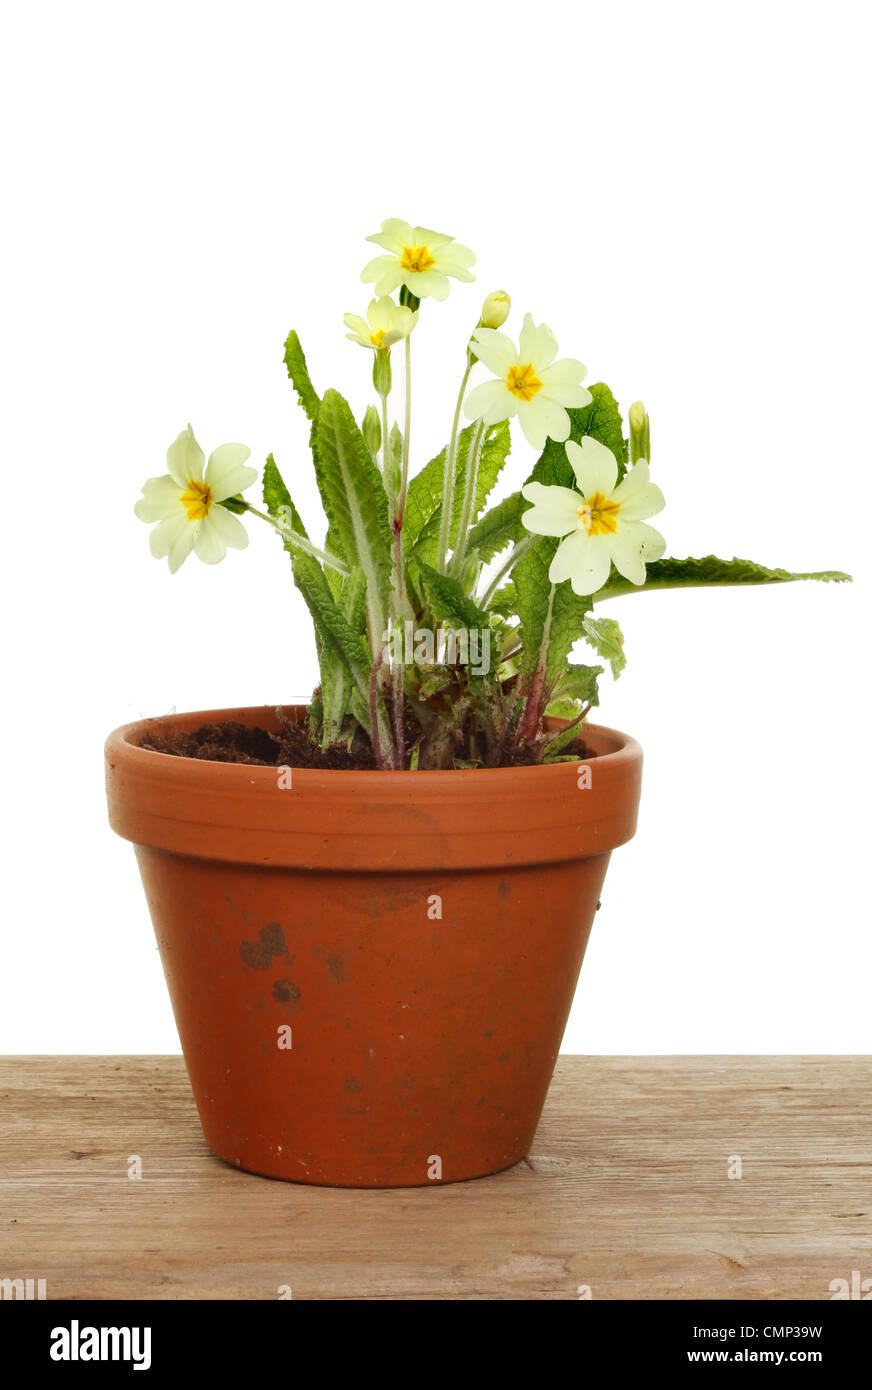 Yellow plant pot stock photos yellow plant pot stock images alamy primrose plant with pale yellow flowers in a terracotta pot on a wooden bench stock mightylinksfo